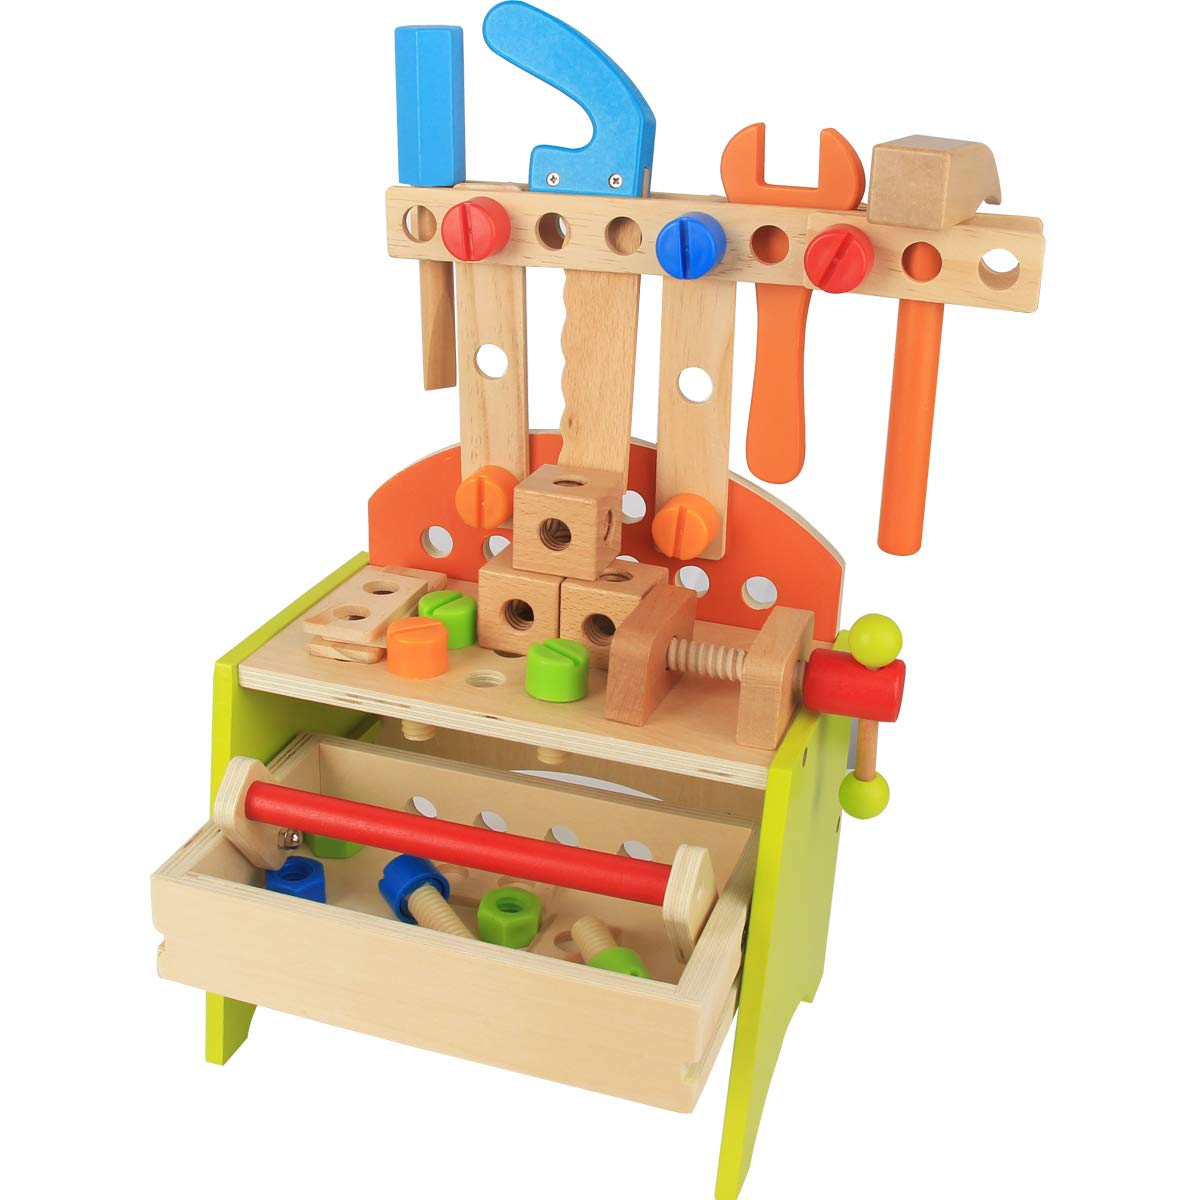 Wooden Power Tool Workshop for Toddlers Building Tools Sets Pretend Play Toys